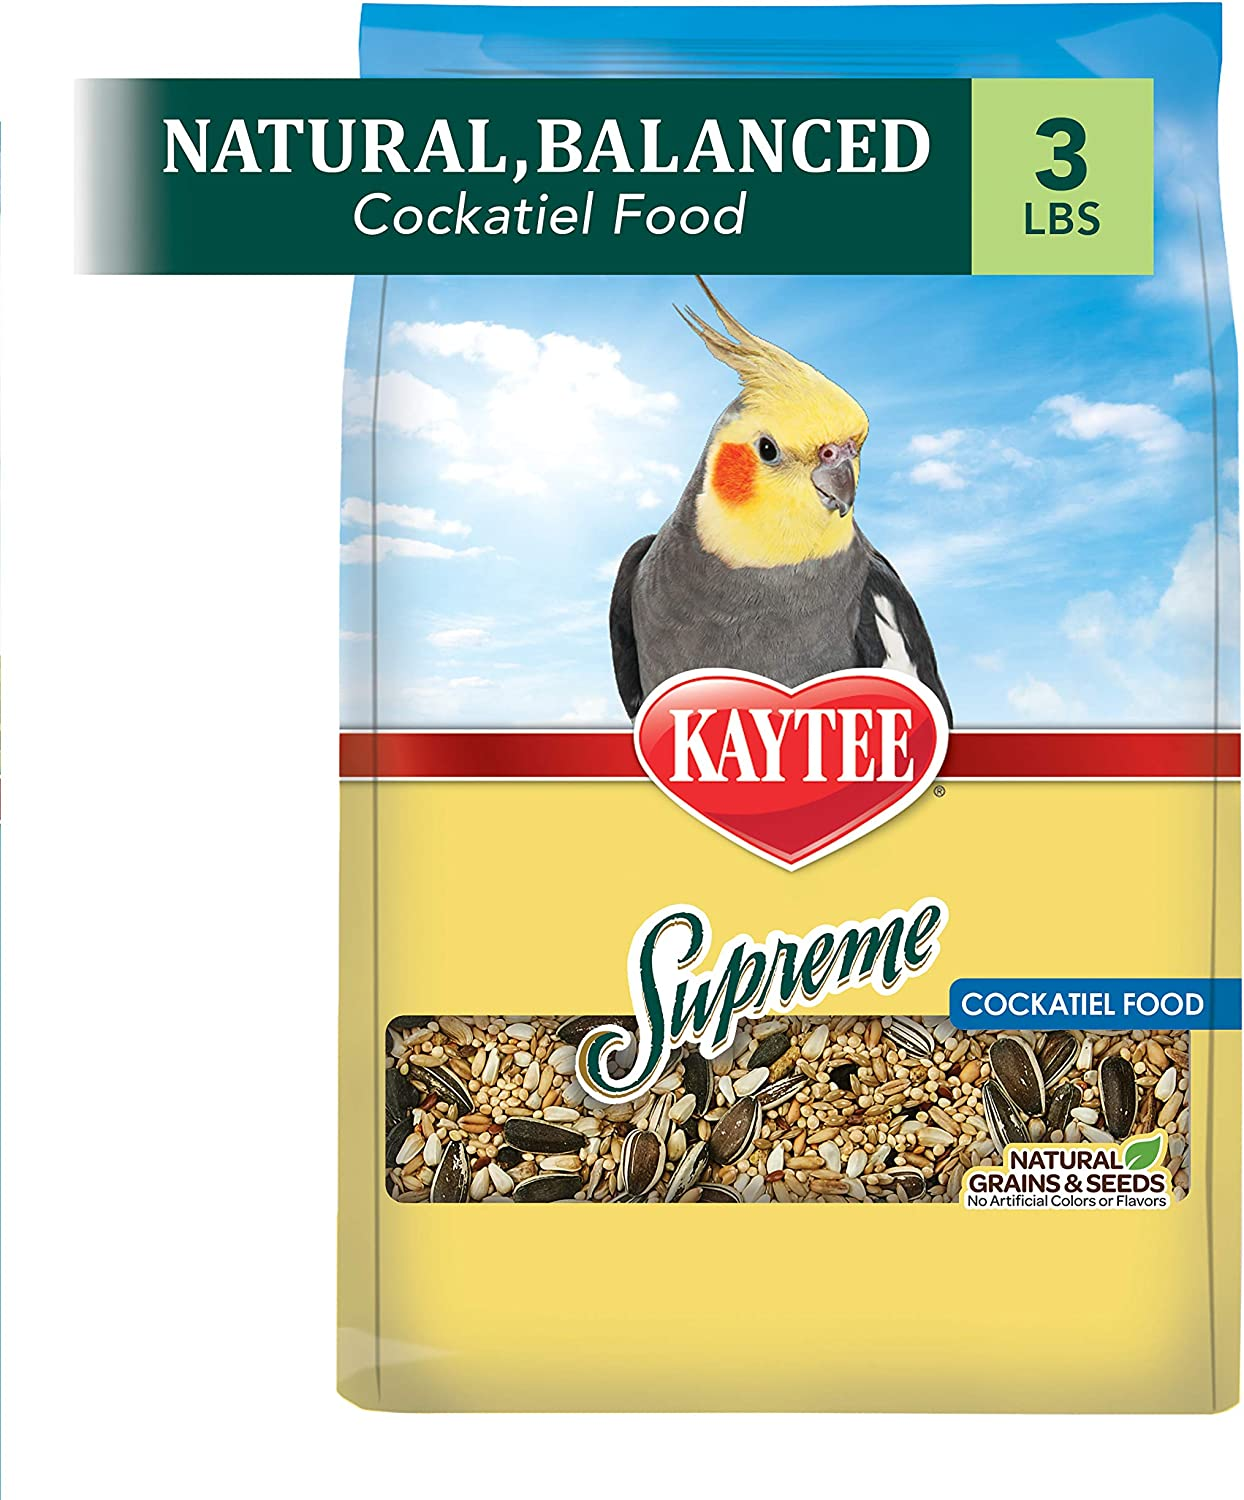 Kaytee Supreme Cockatiel Food 3 lb